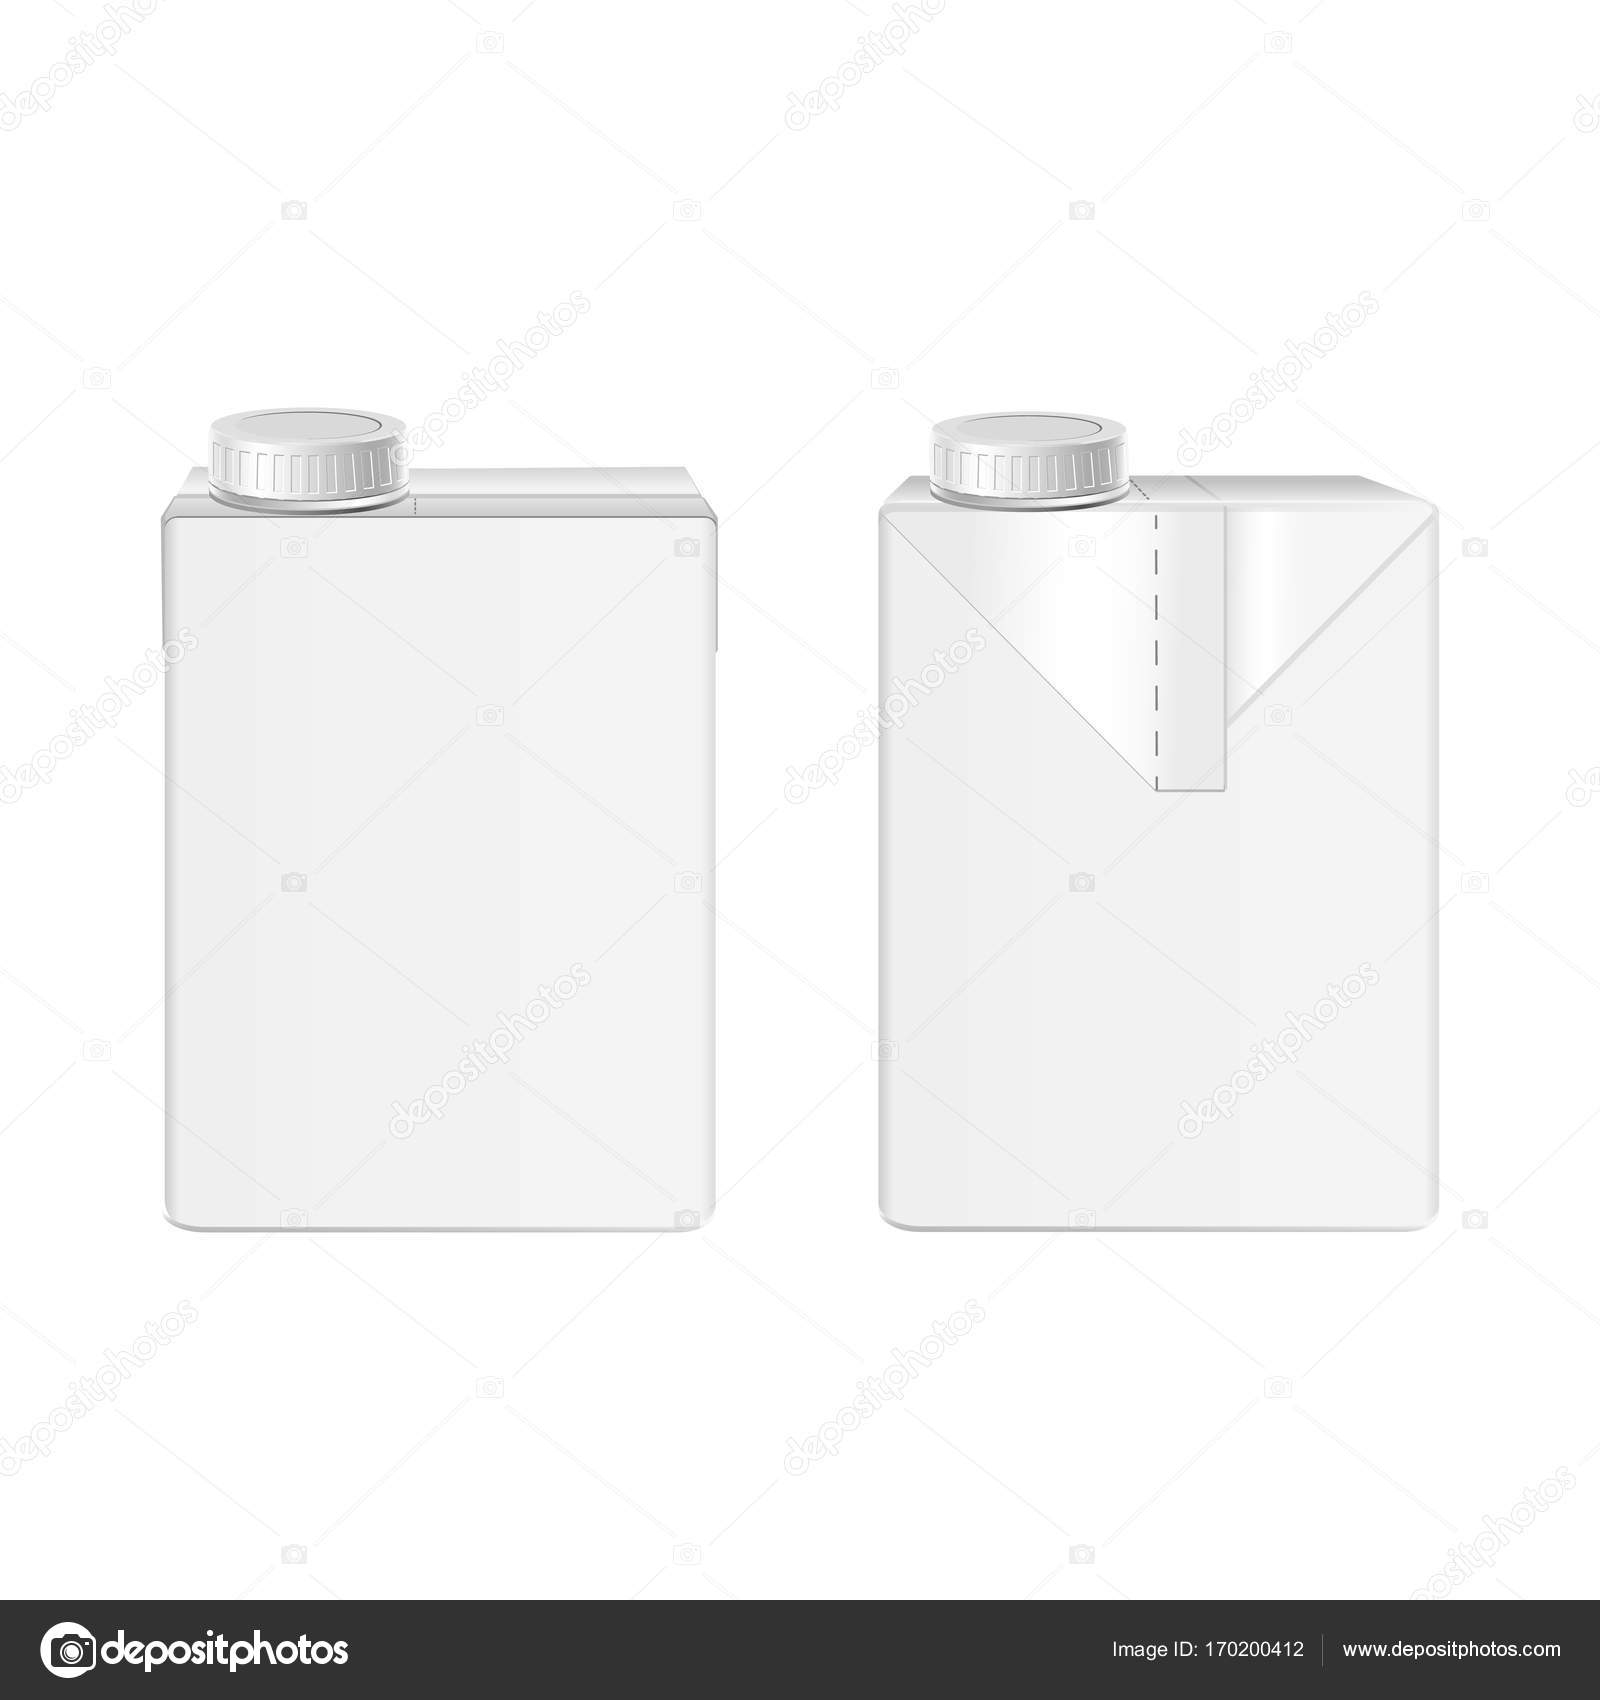 vector 3d mock up of milk or juice box on white background